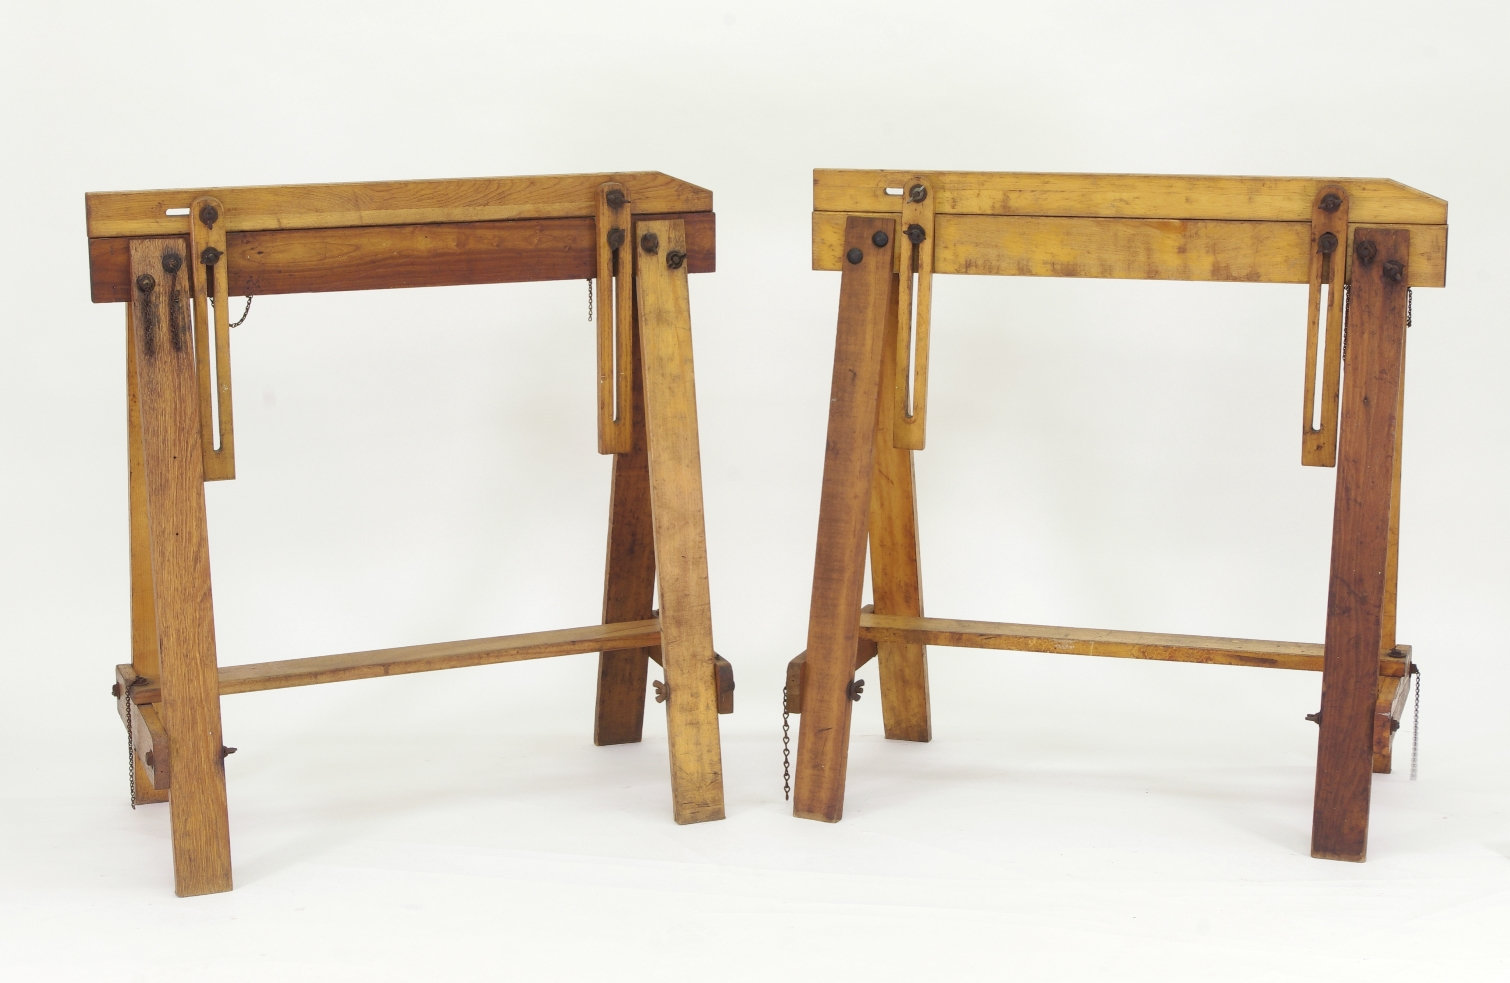 Pair of Adjustable Sawhorses c. 1920